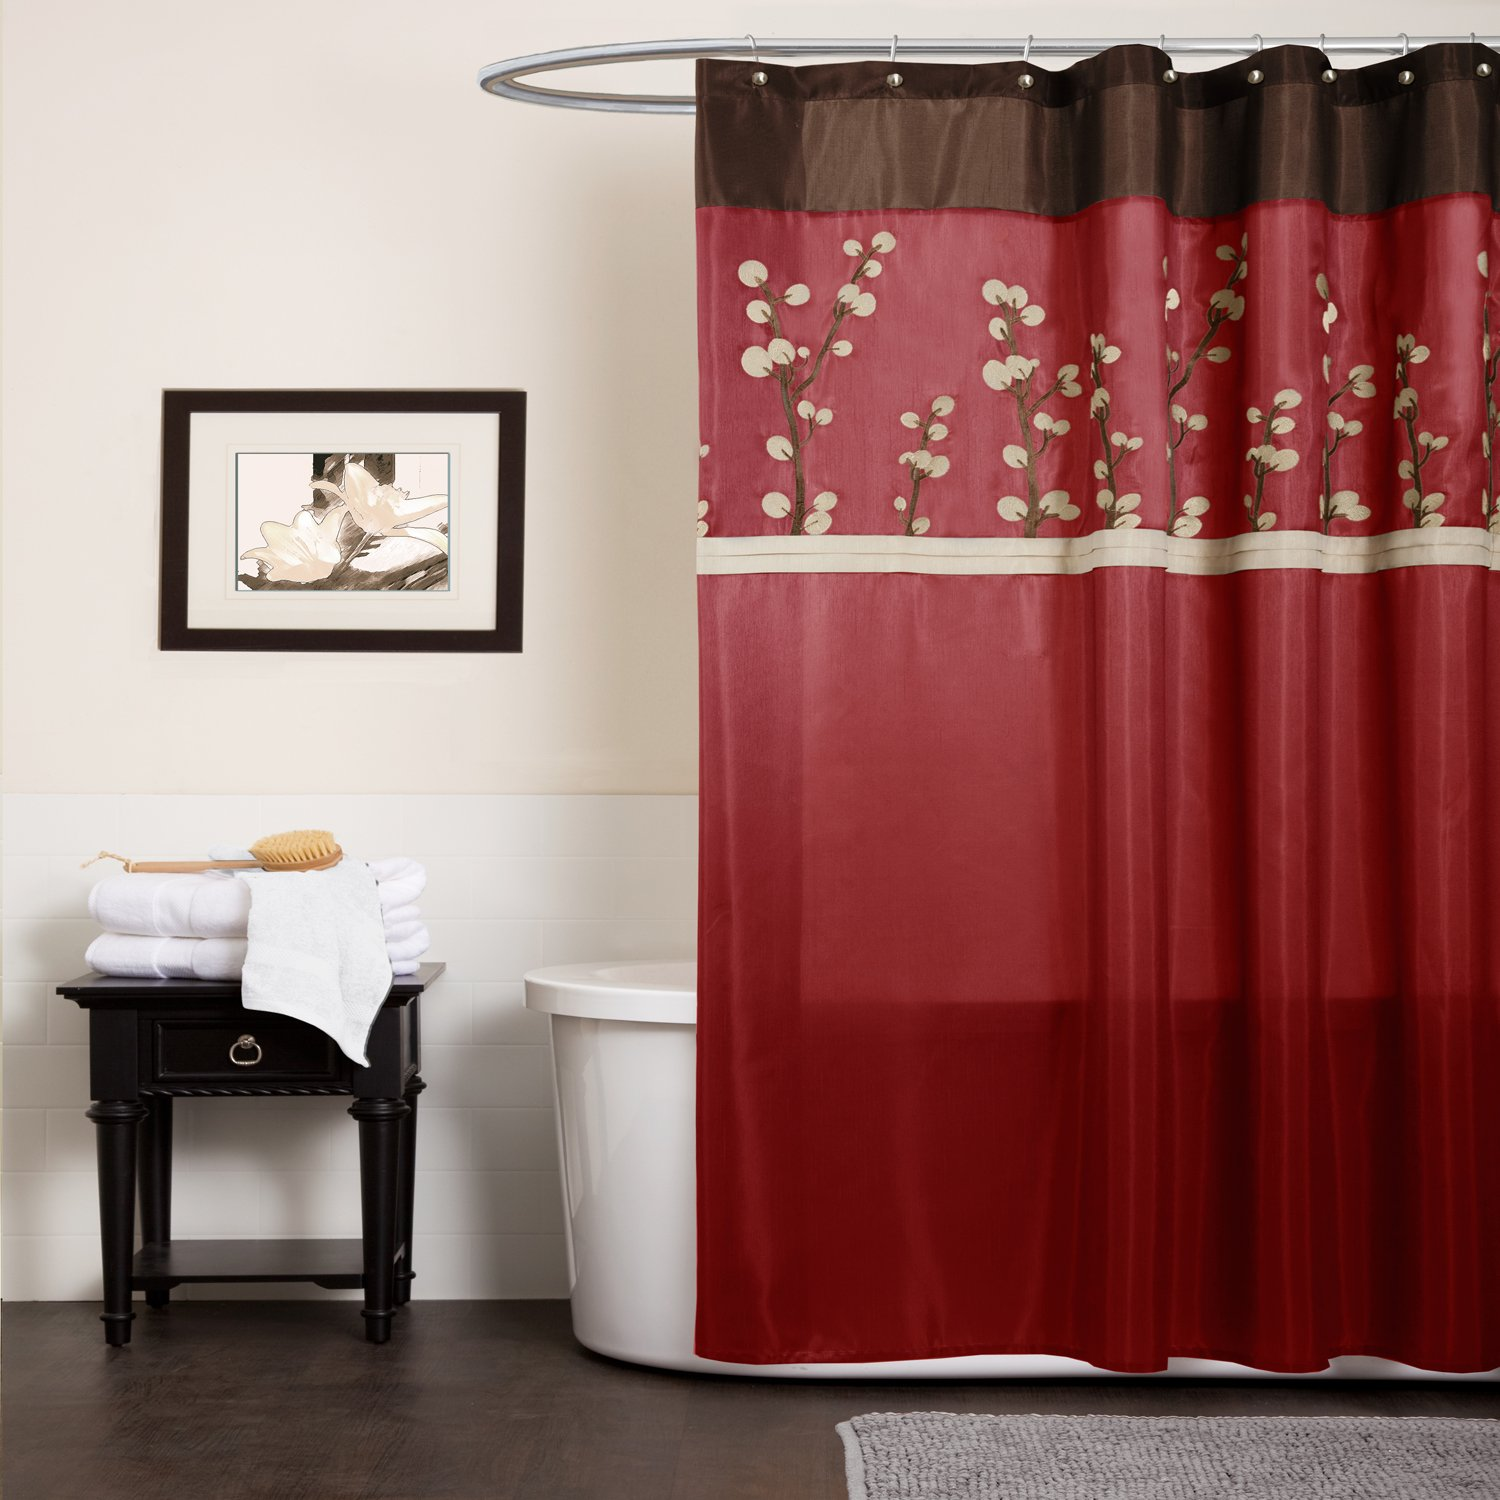 Black Bathroom Accessories Red And Black Bathroom Accessories Bathroomacest